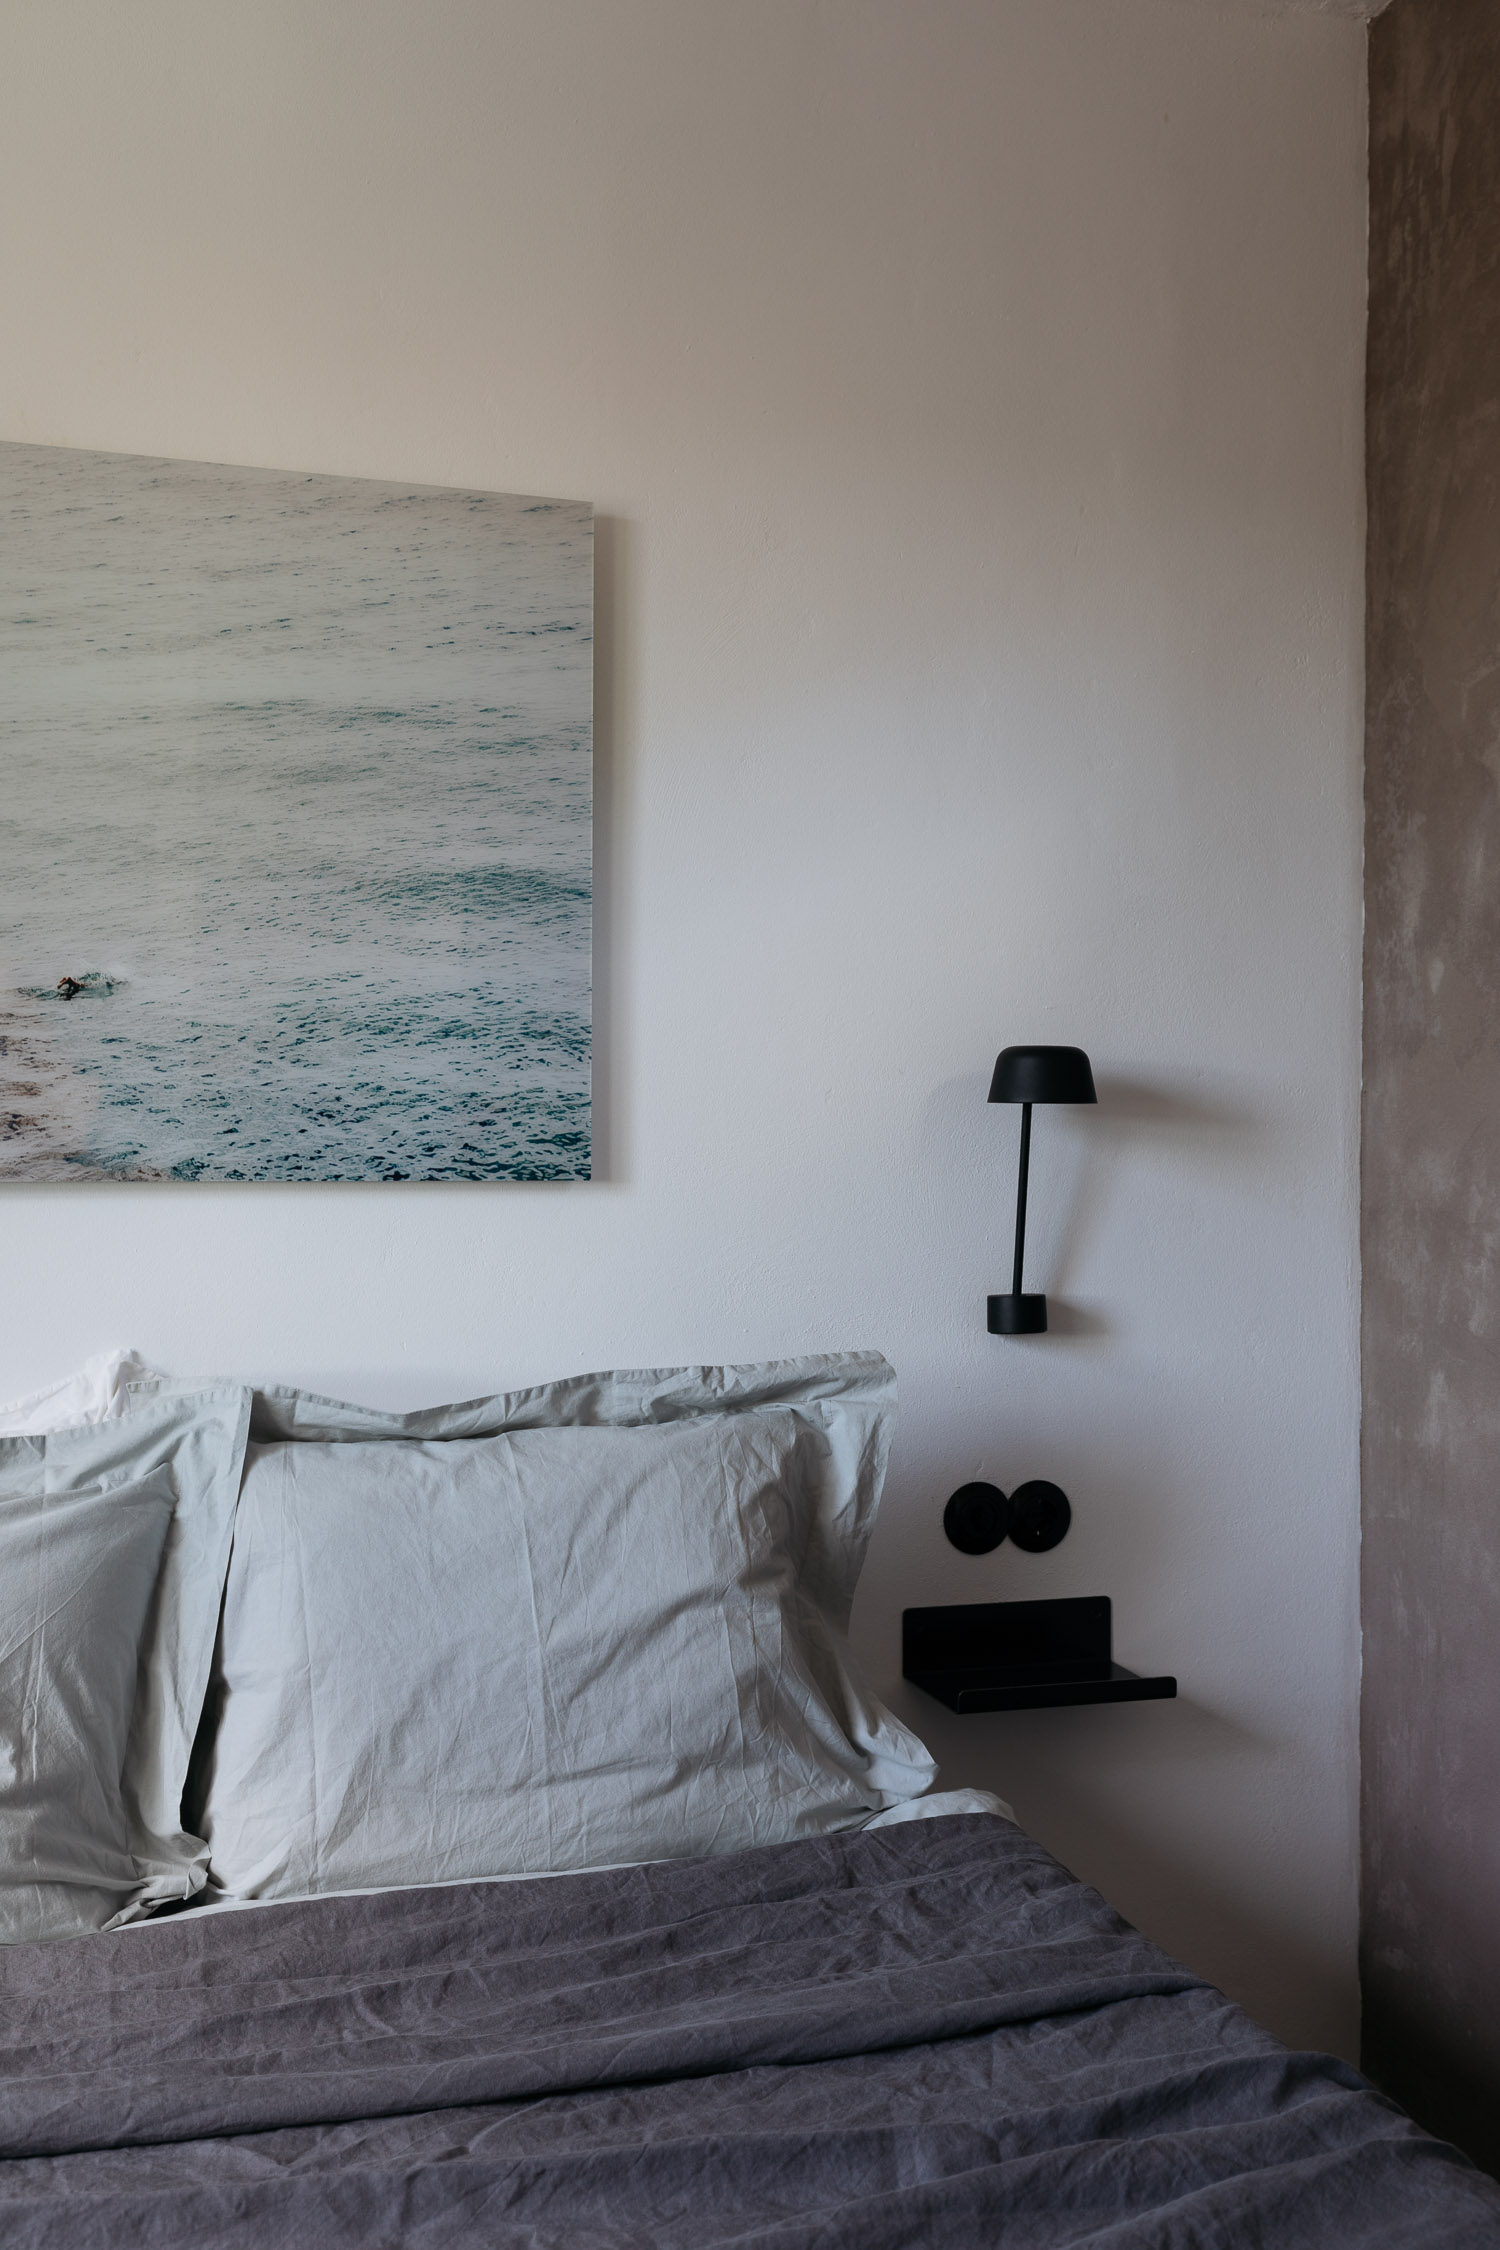 Ibiza_Campo_Loft_interior_architecture_photography_On_a_hazy_morning_Amsterdam107.jpg